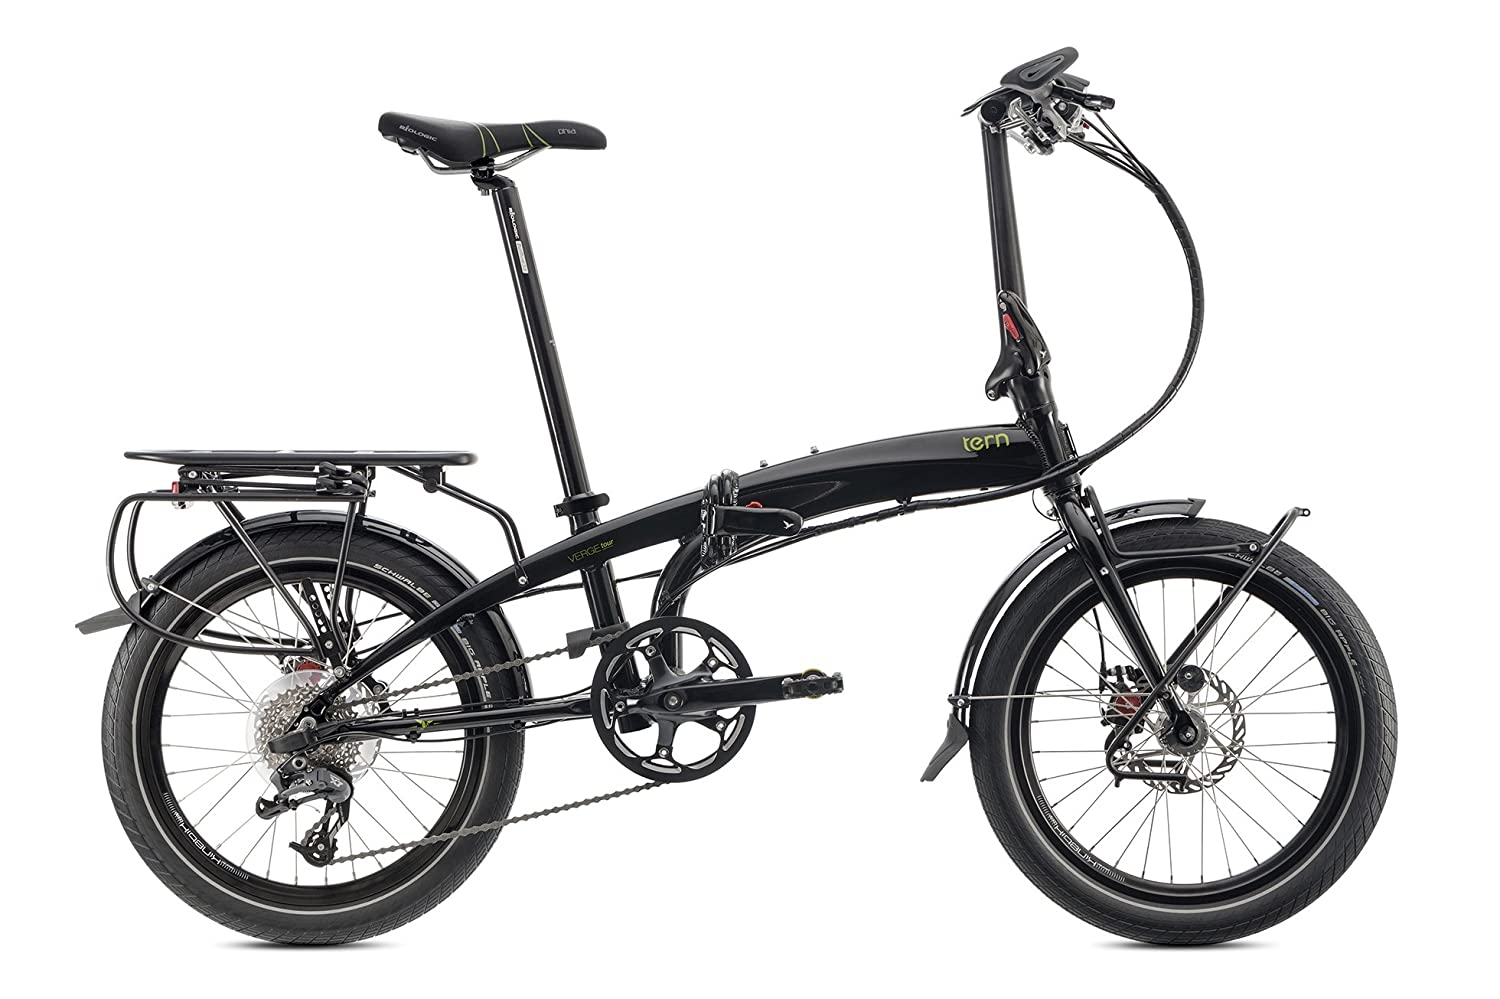 Roll over image to zoom in tern Verge Tour folding bike 20